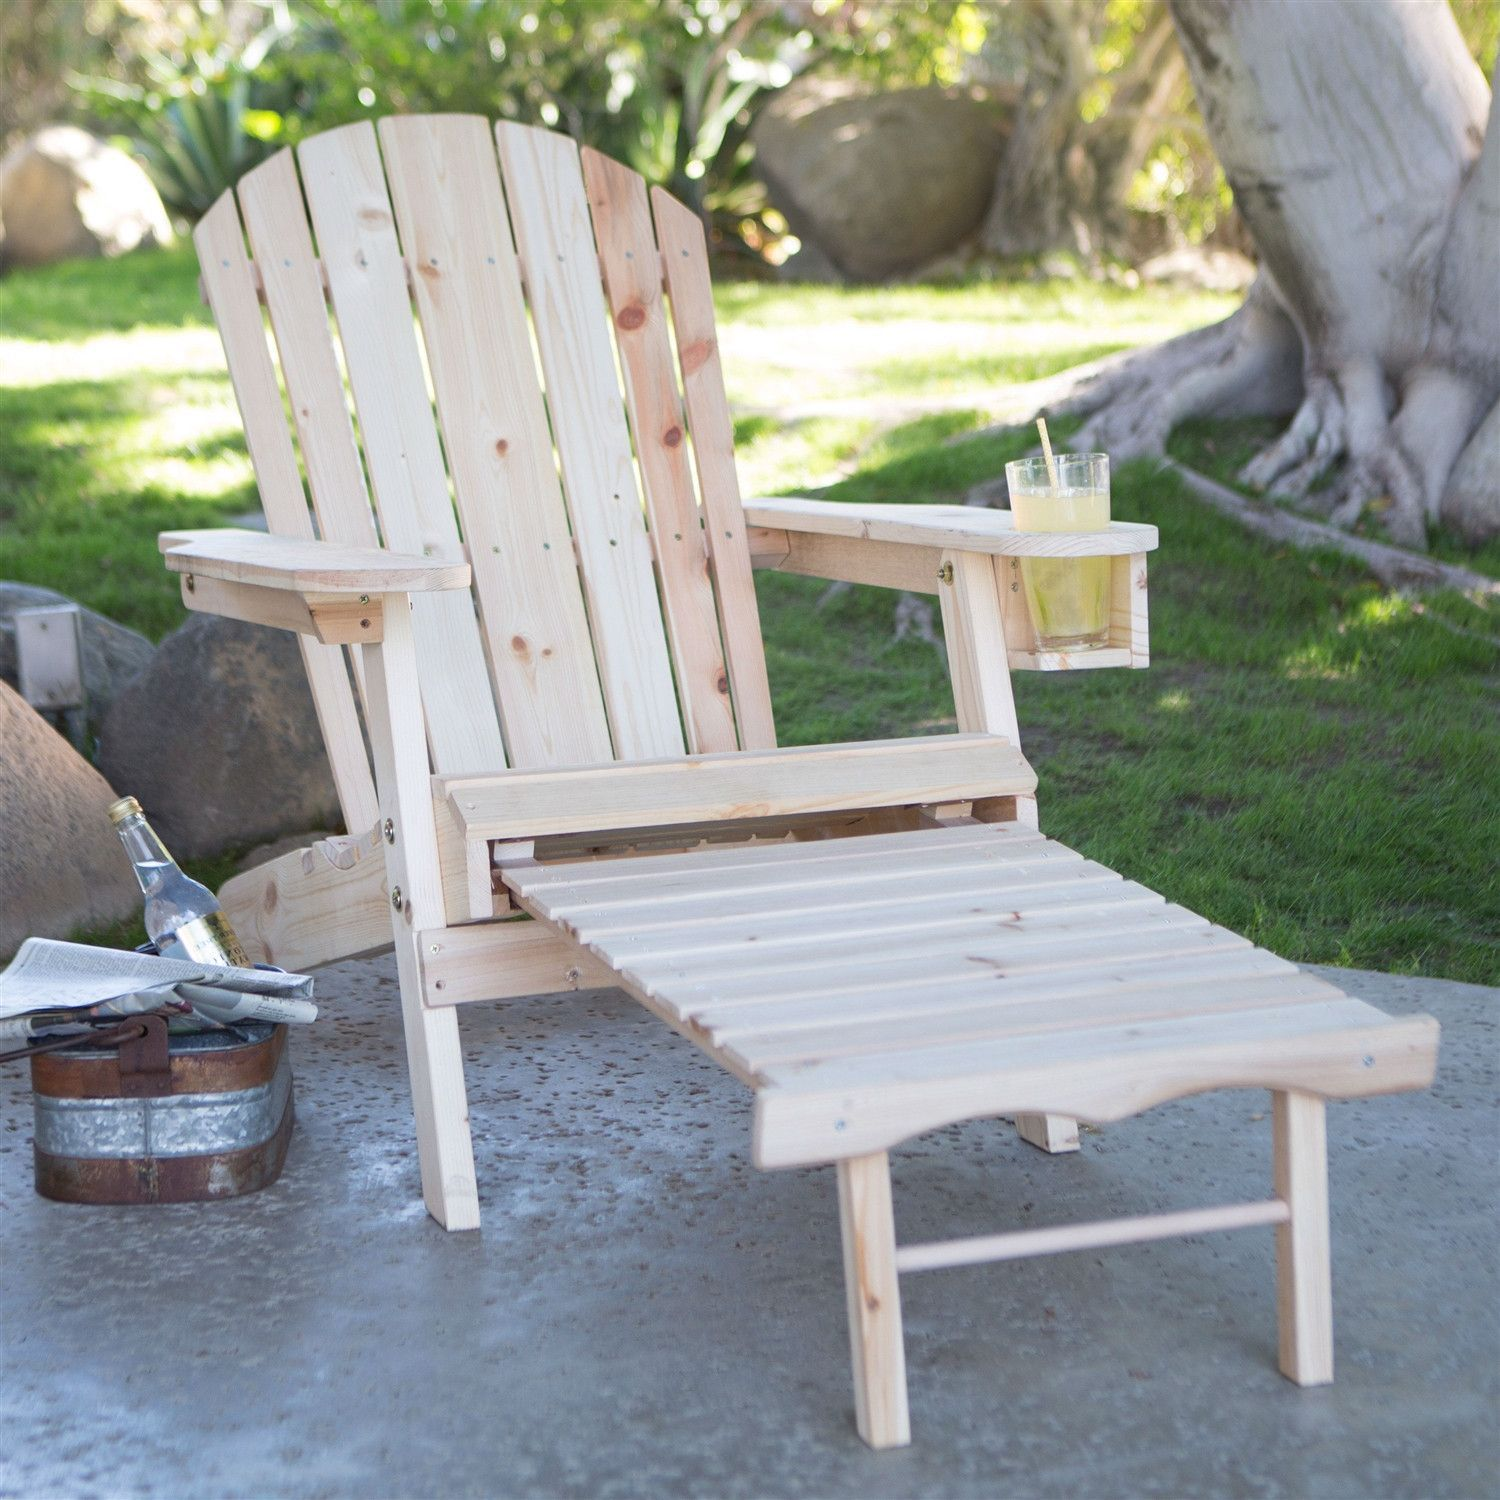 Natural Unfinished Fir Wood Adirondack Chair With Retractable Ottoman And Drink Holder Rustic Outdoor Furniture Wood Adirondack Chairs Rustic Furniture